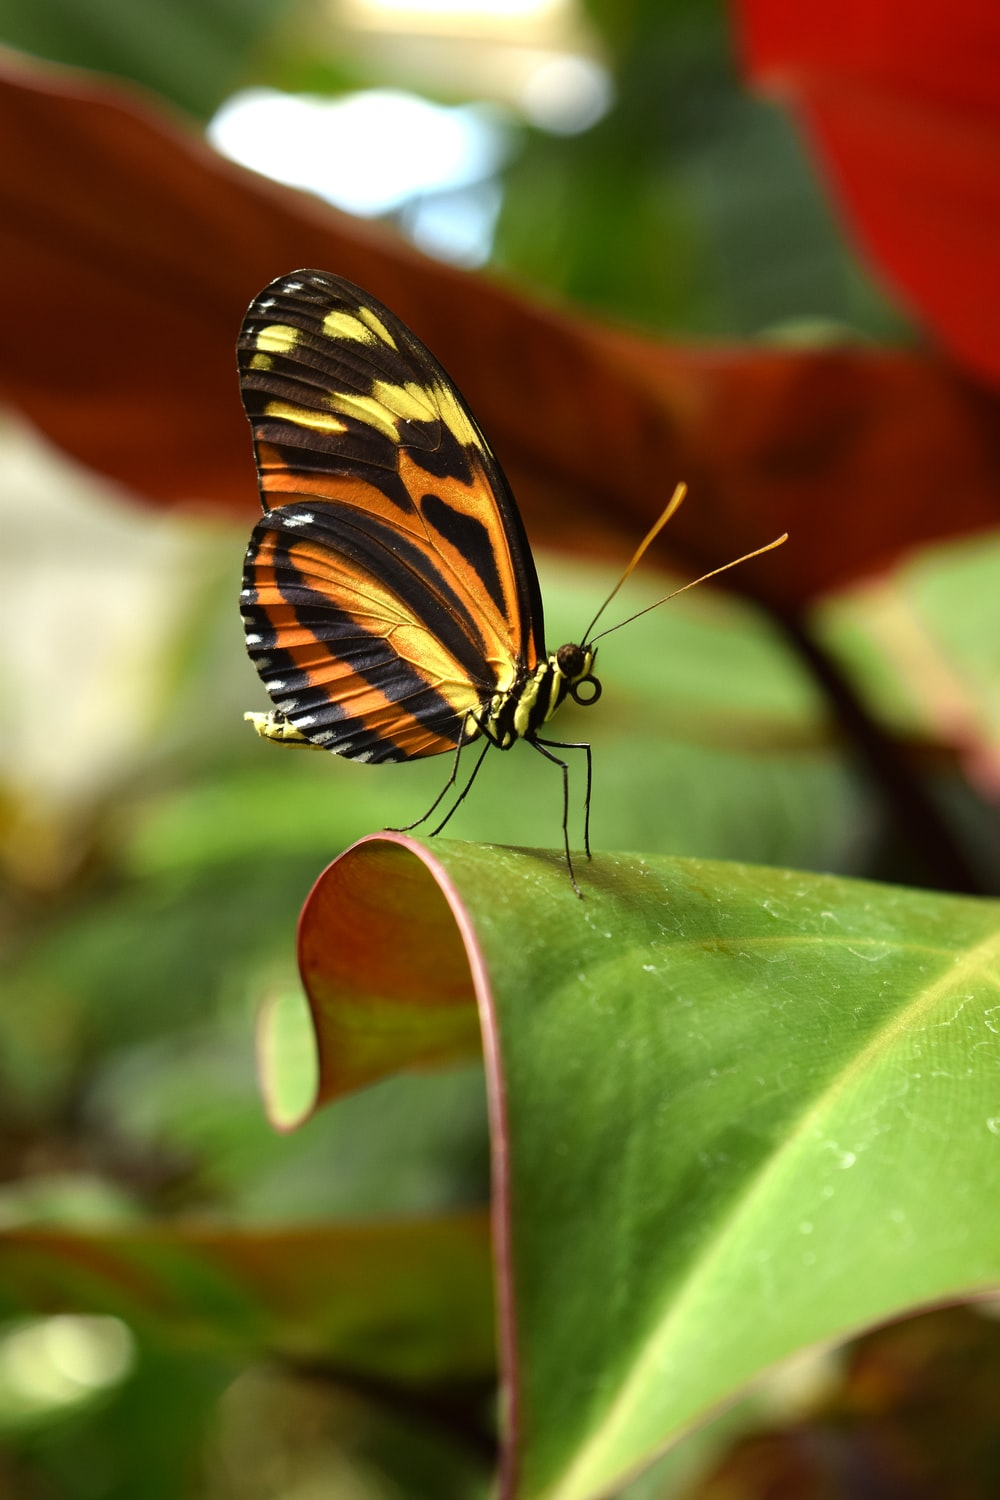 black, yellow, and orange butterfly on green leaf